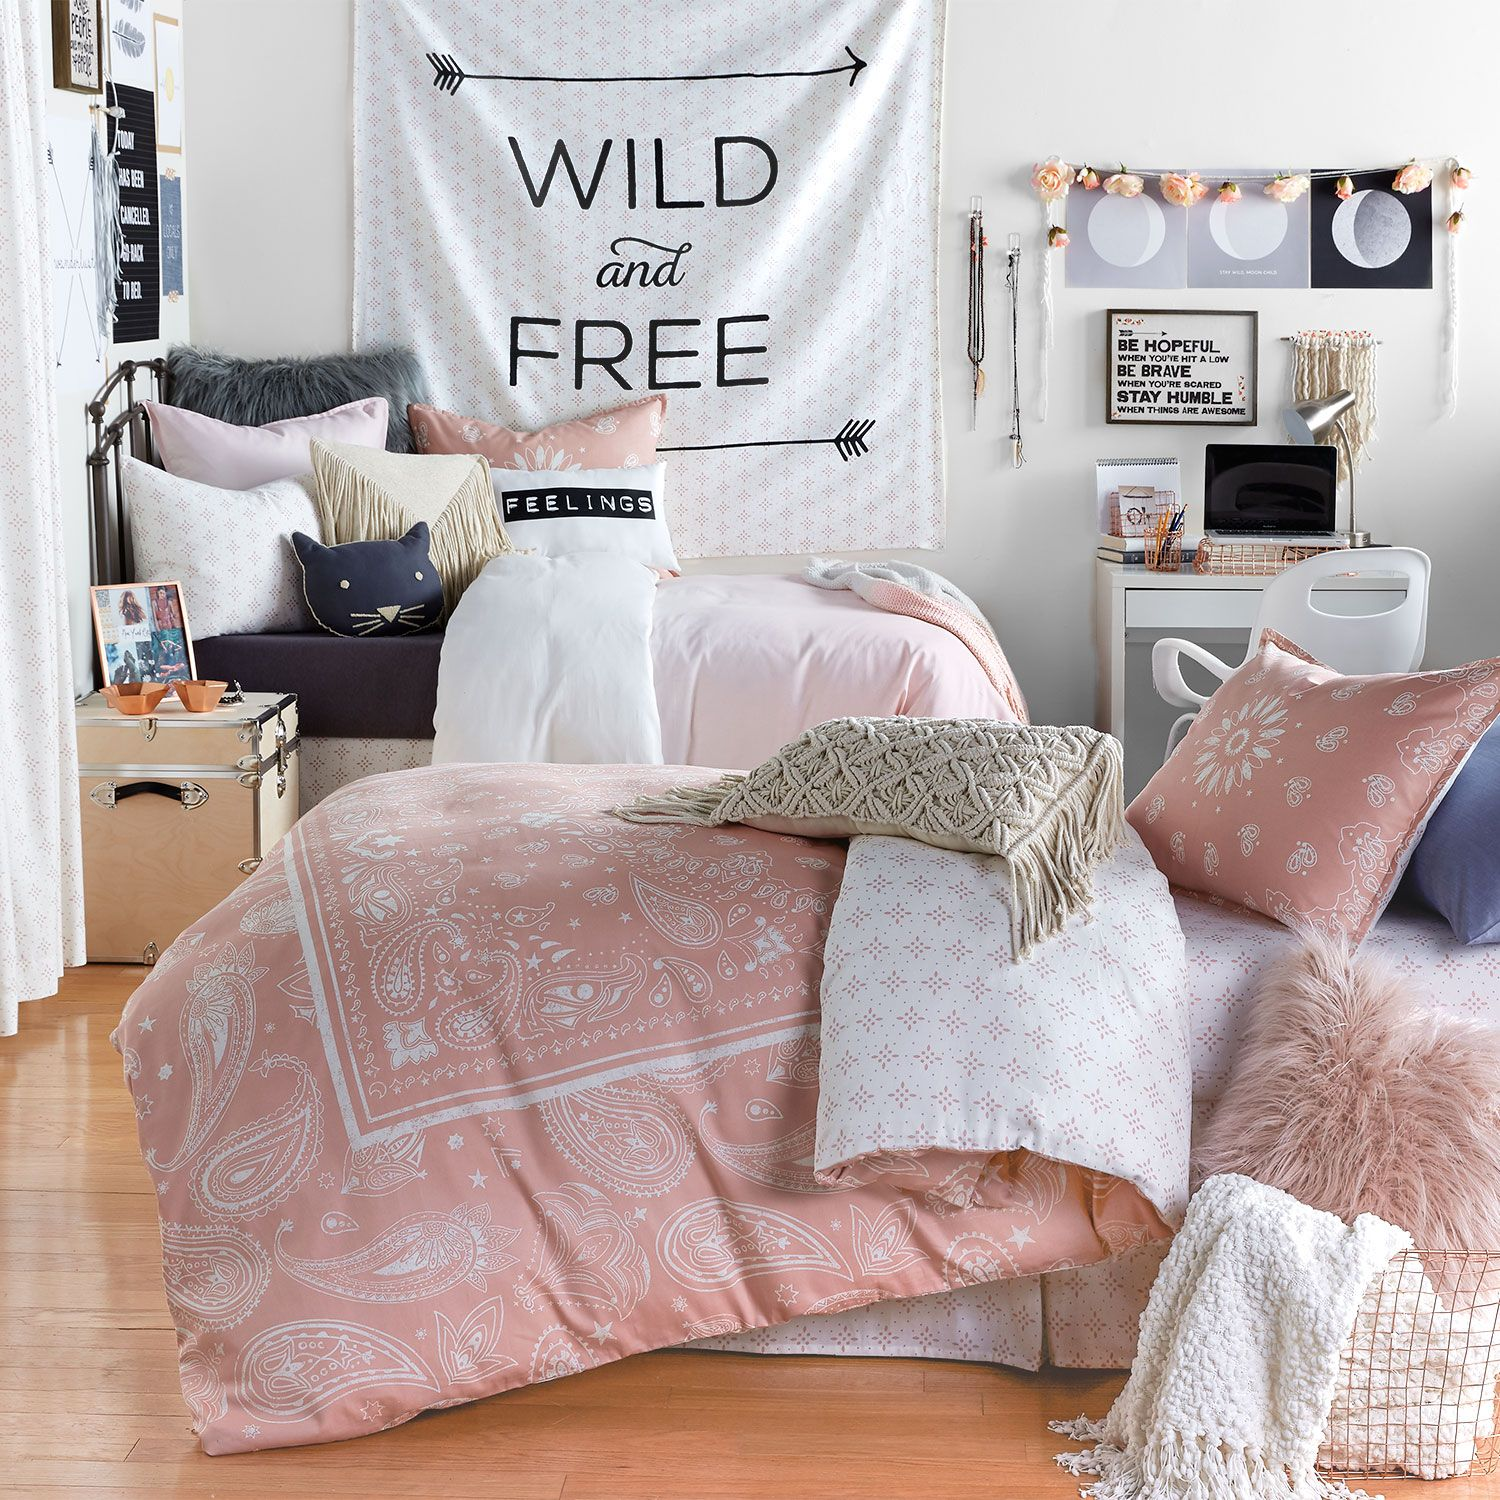 Festival room dormify home decor and miscellaneous